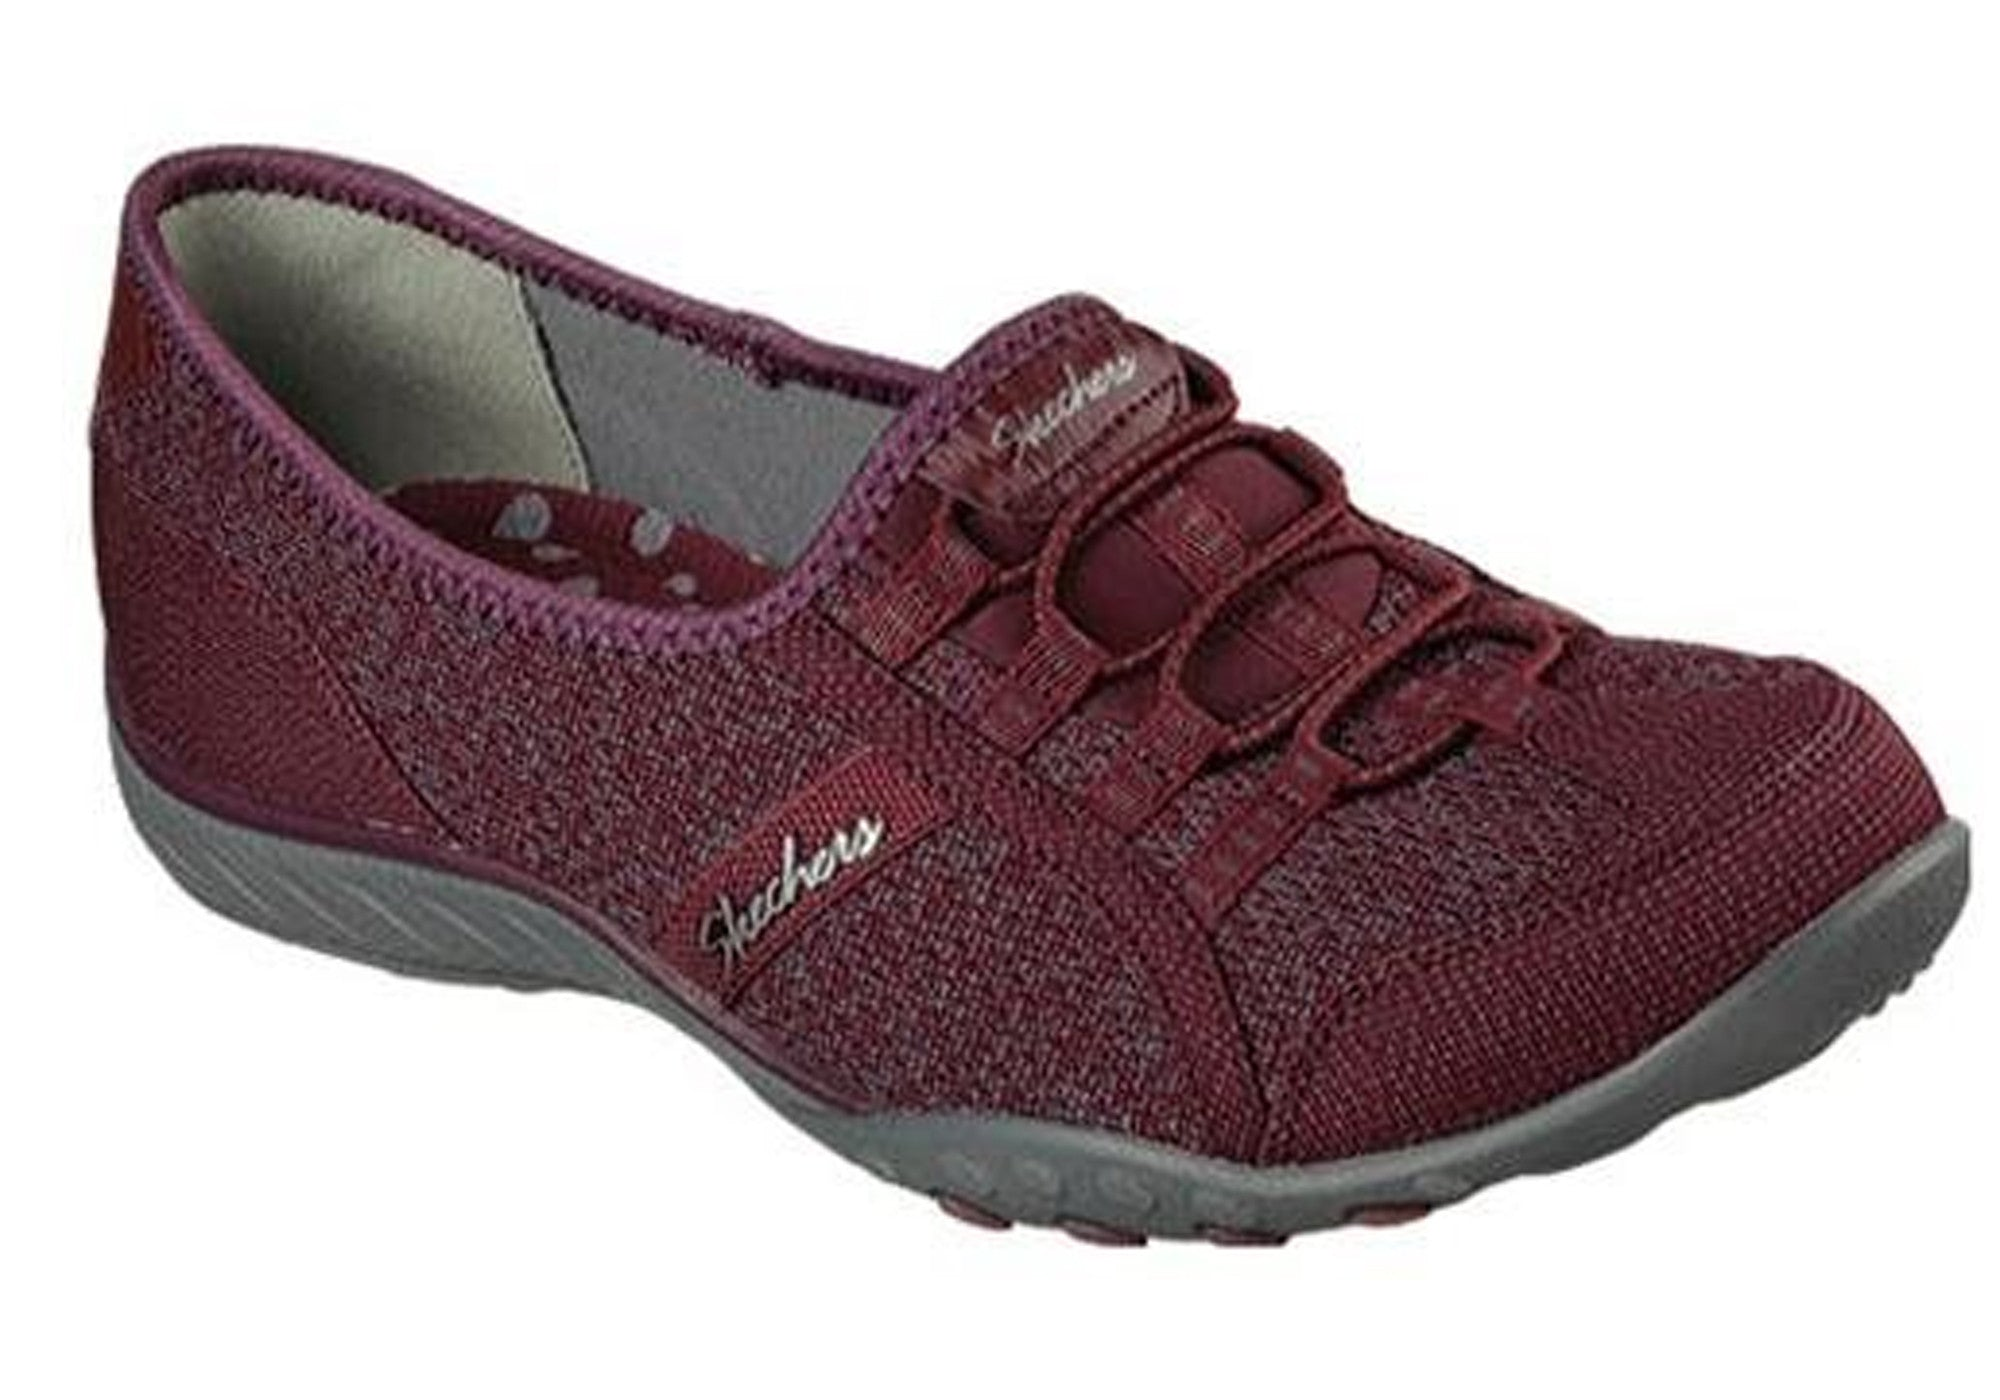 Skechers Breathe Easy Save The Date Womens Shoes